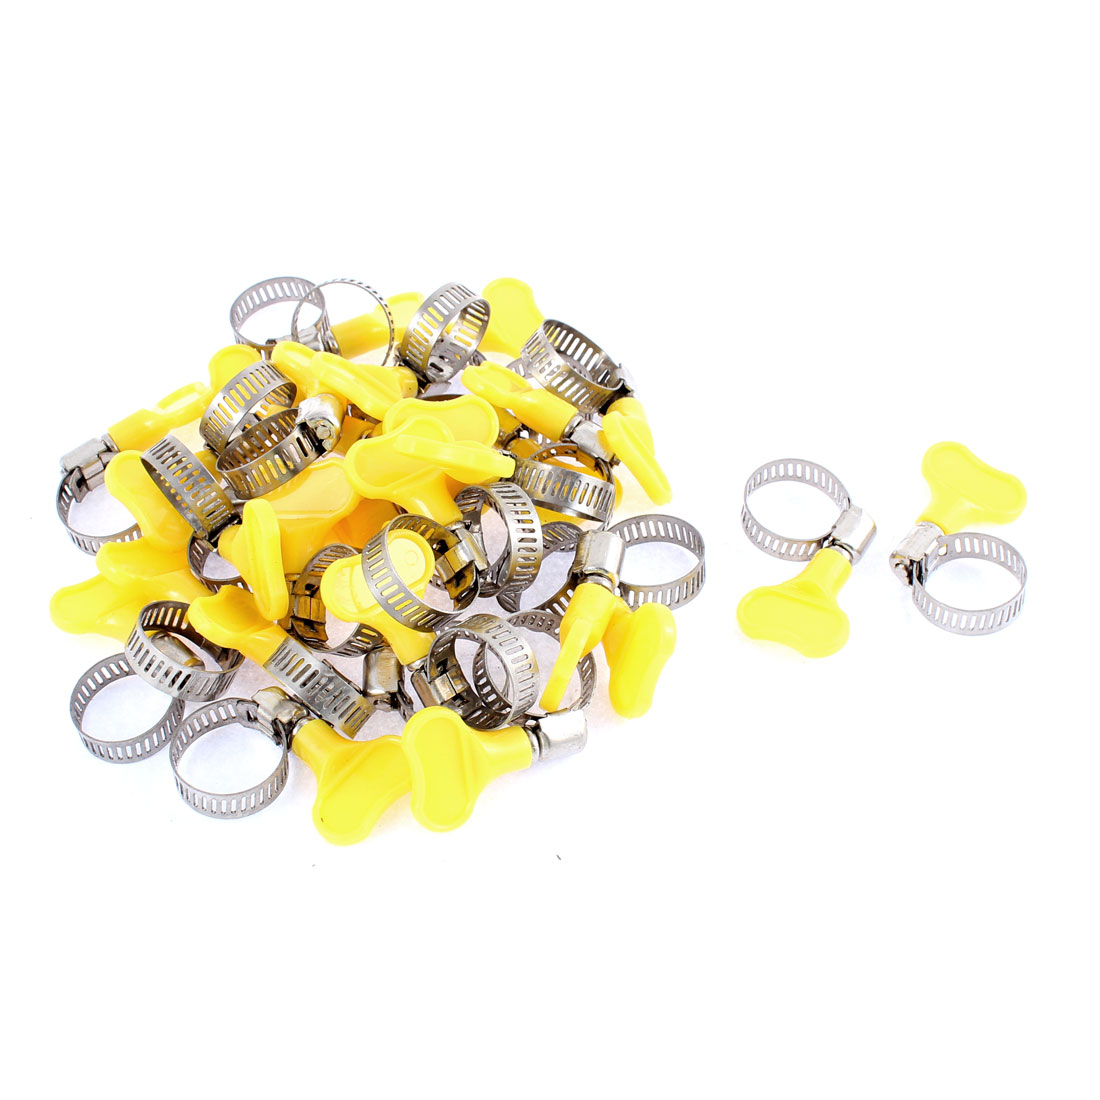 Adjustable 13-19mm Range Band Stainless Steel Worm Drive Hose Clamp 30Pcs